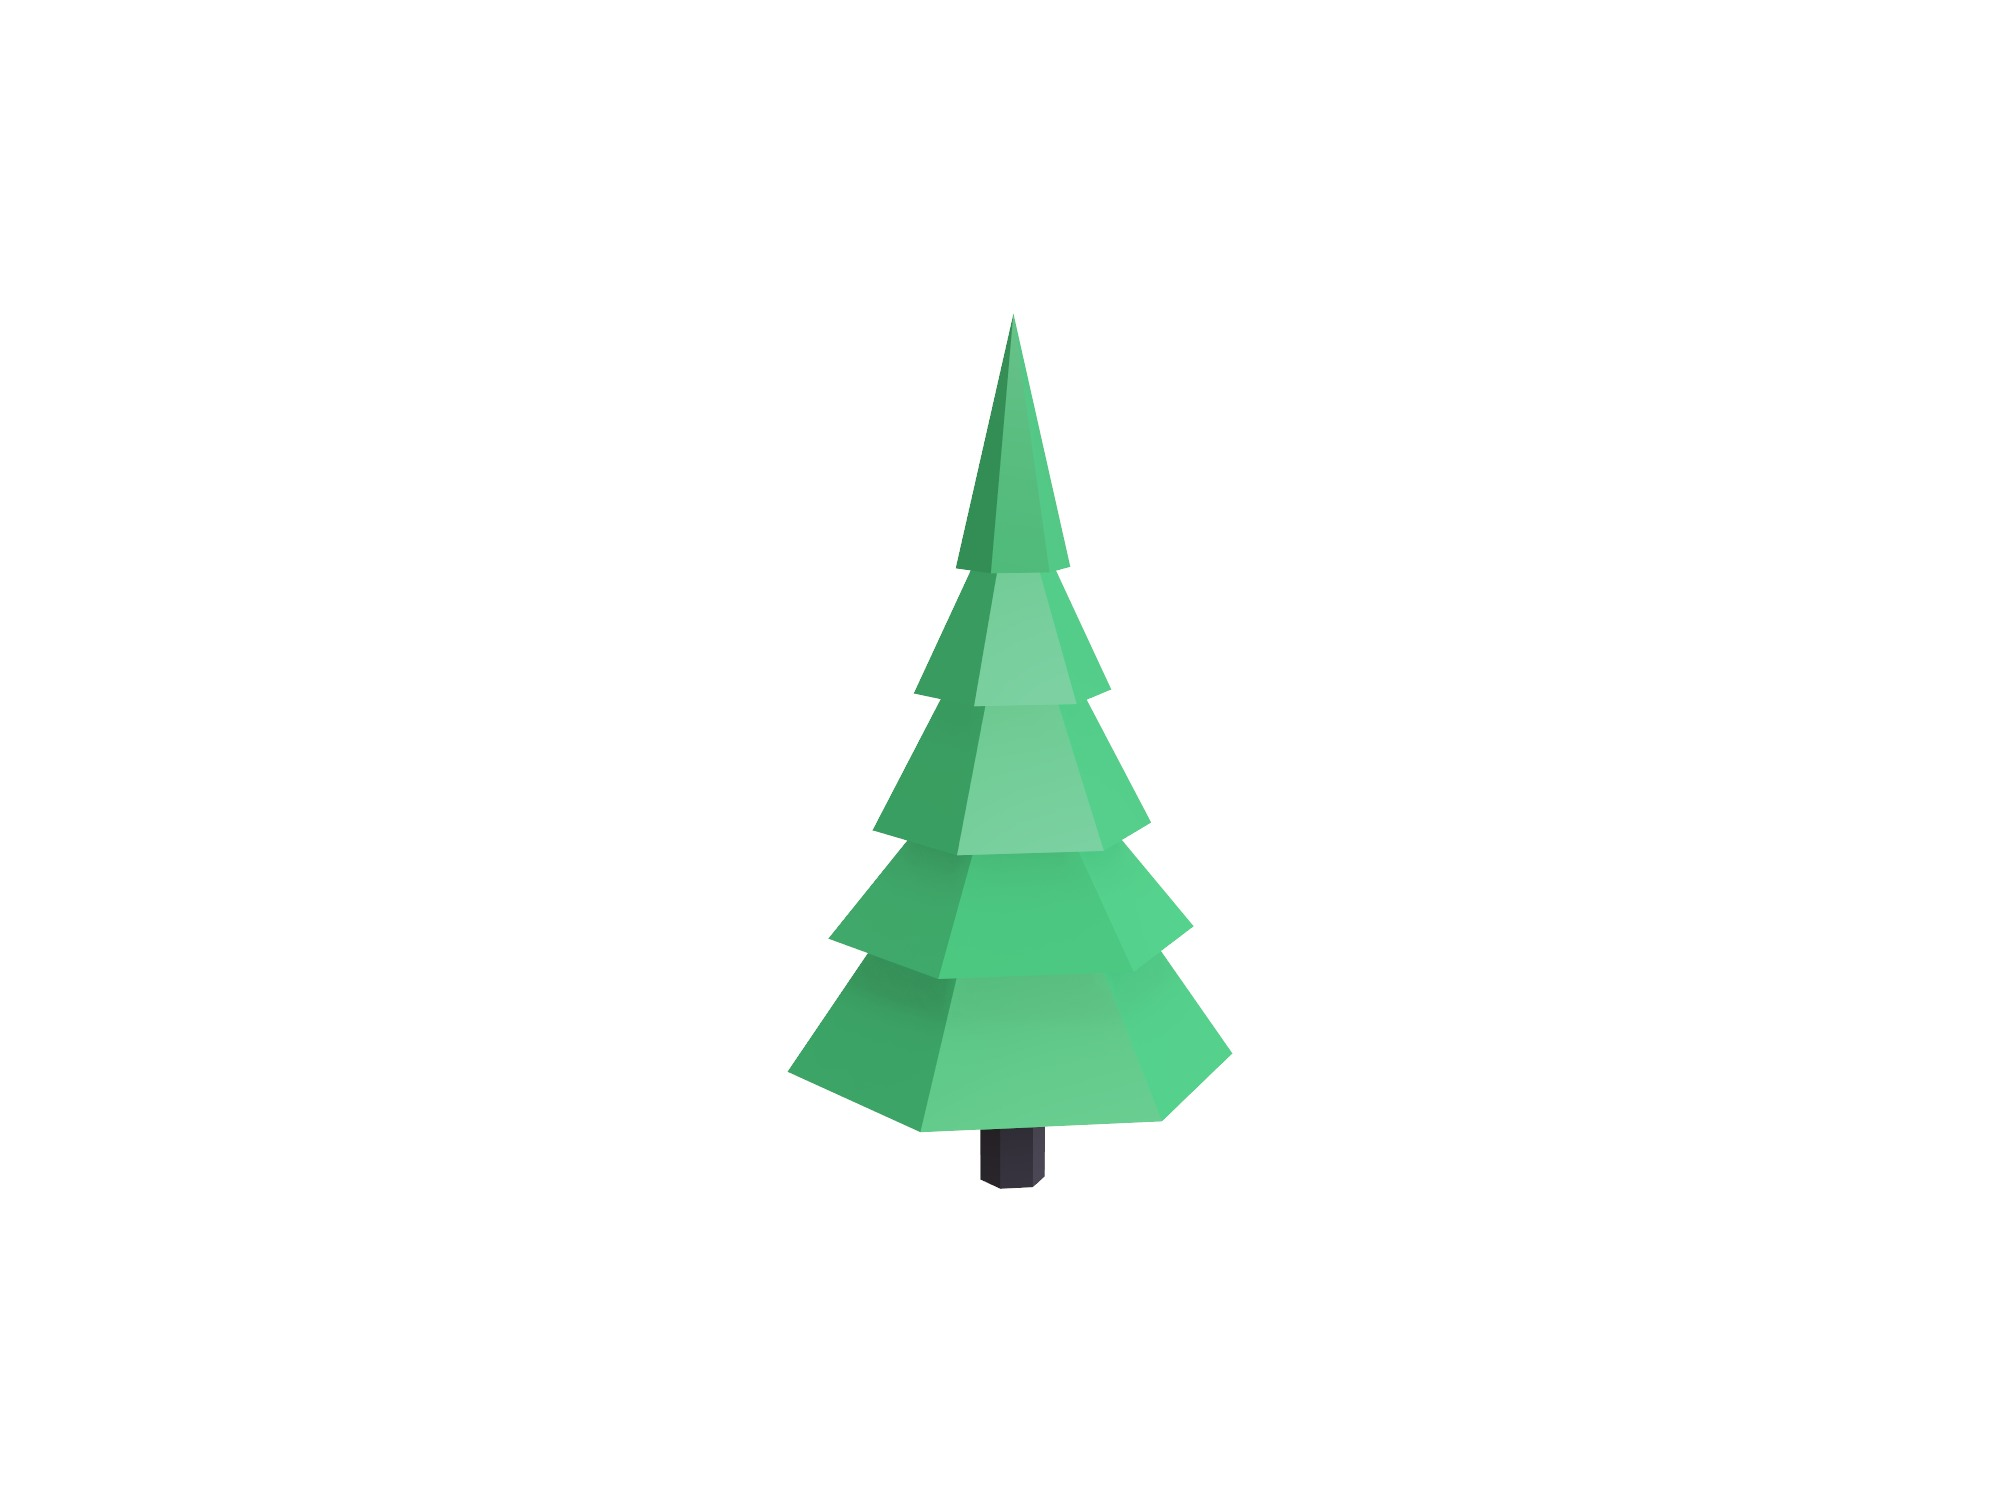 Low poly conifer tree - 3D design by Vectary assets Jun 3, 2018